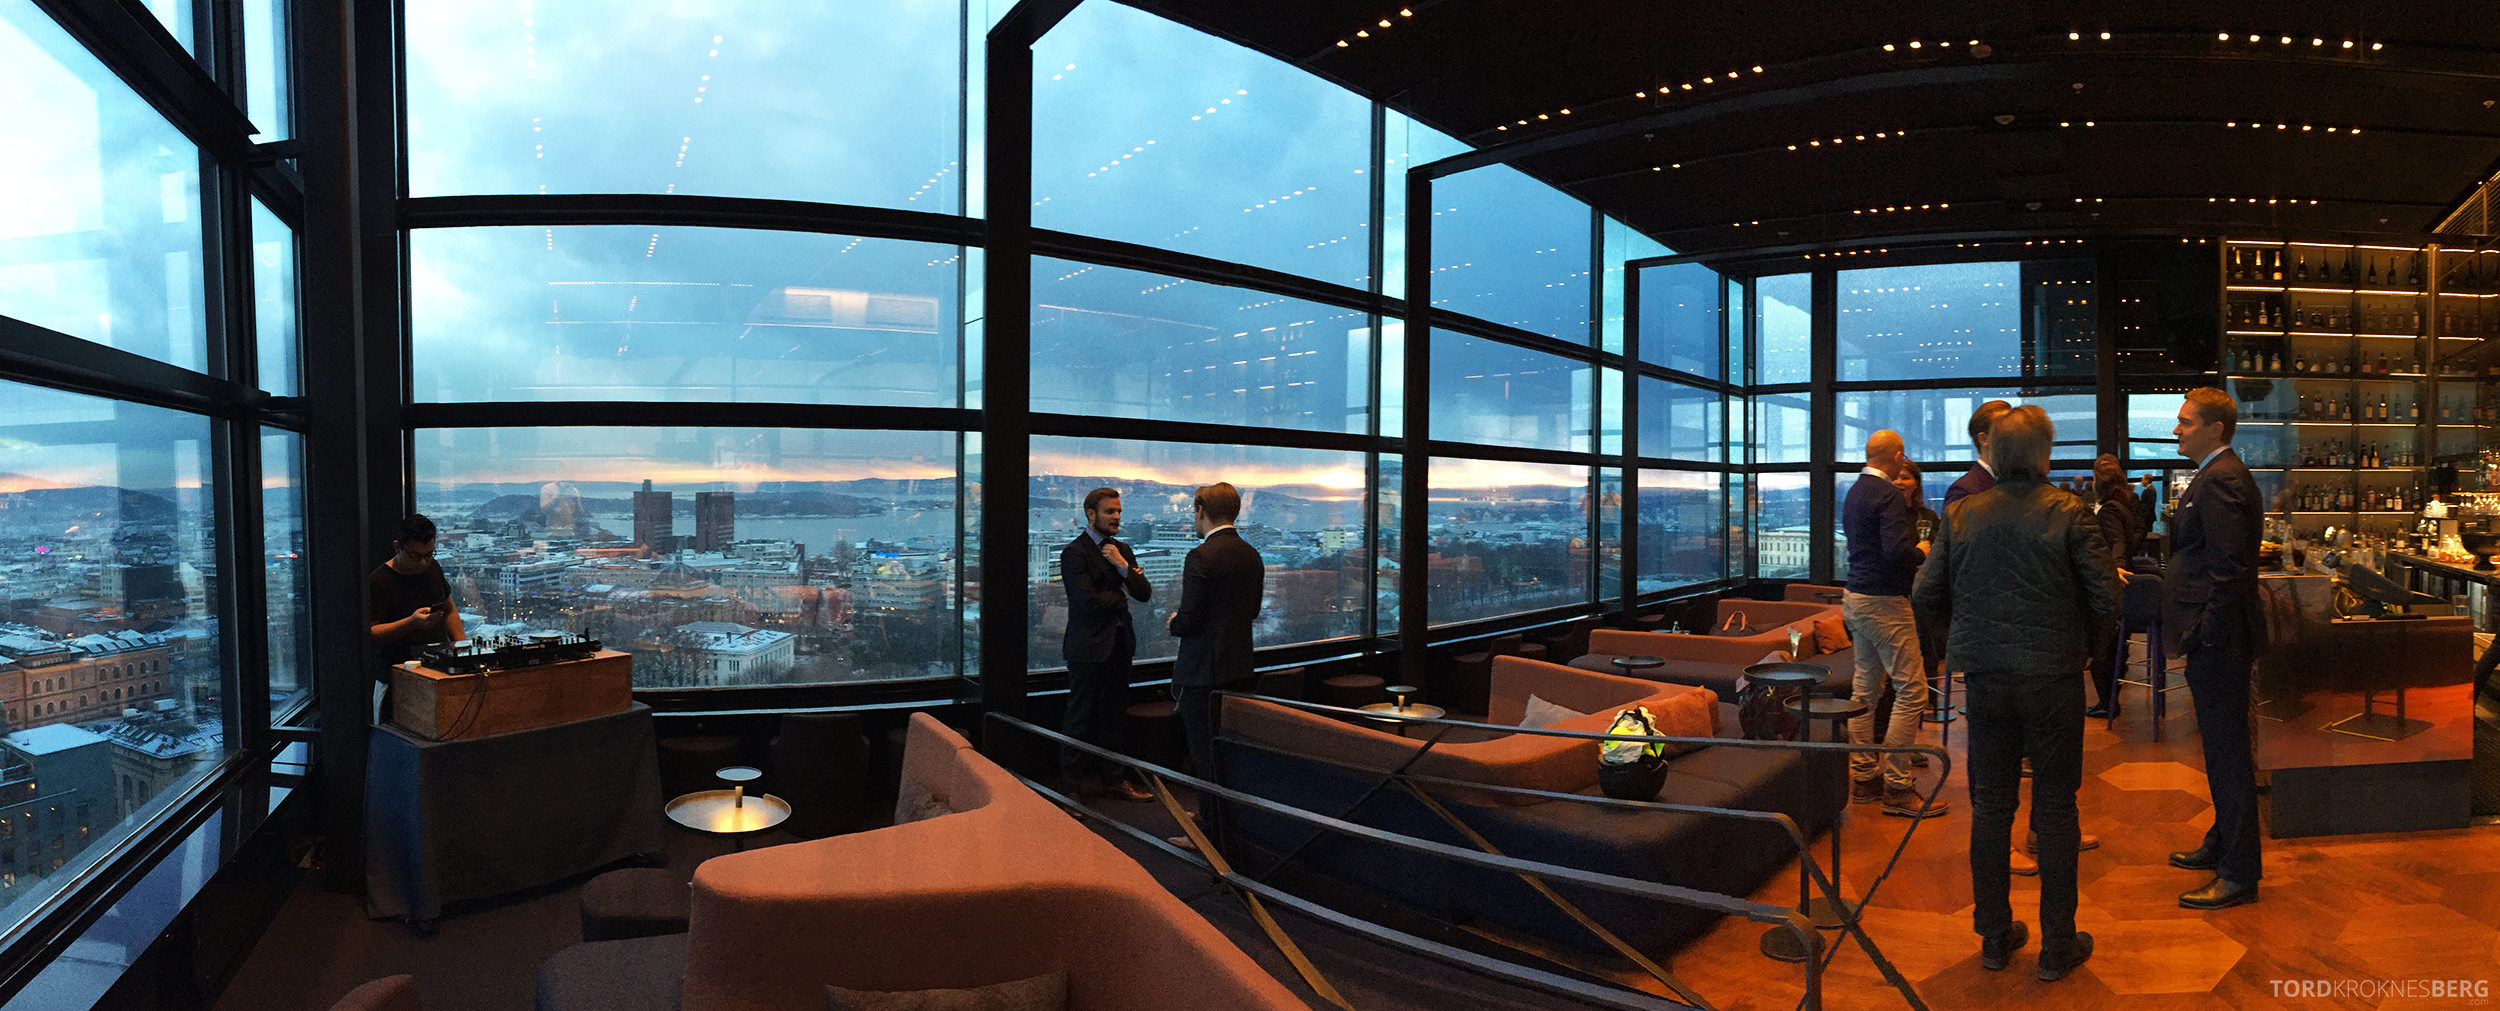 Summit Bar Oslo panorama